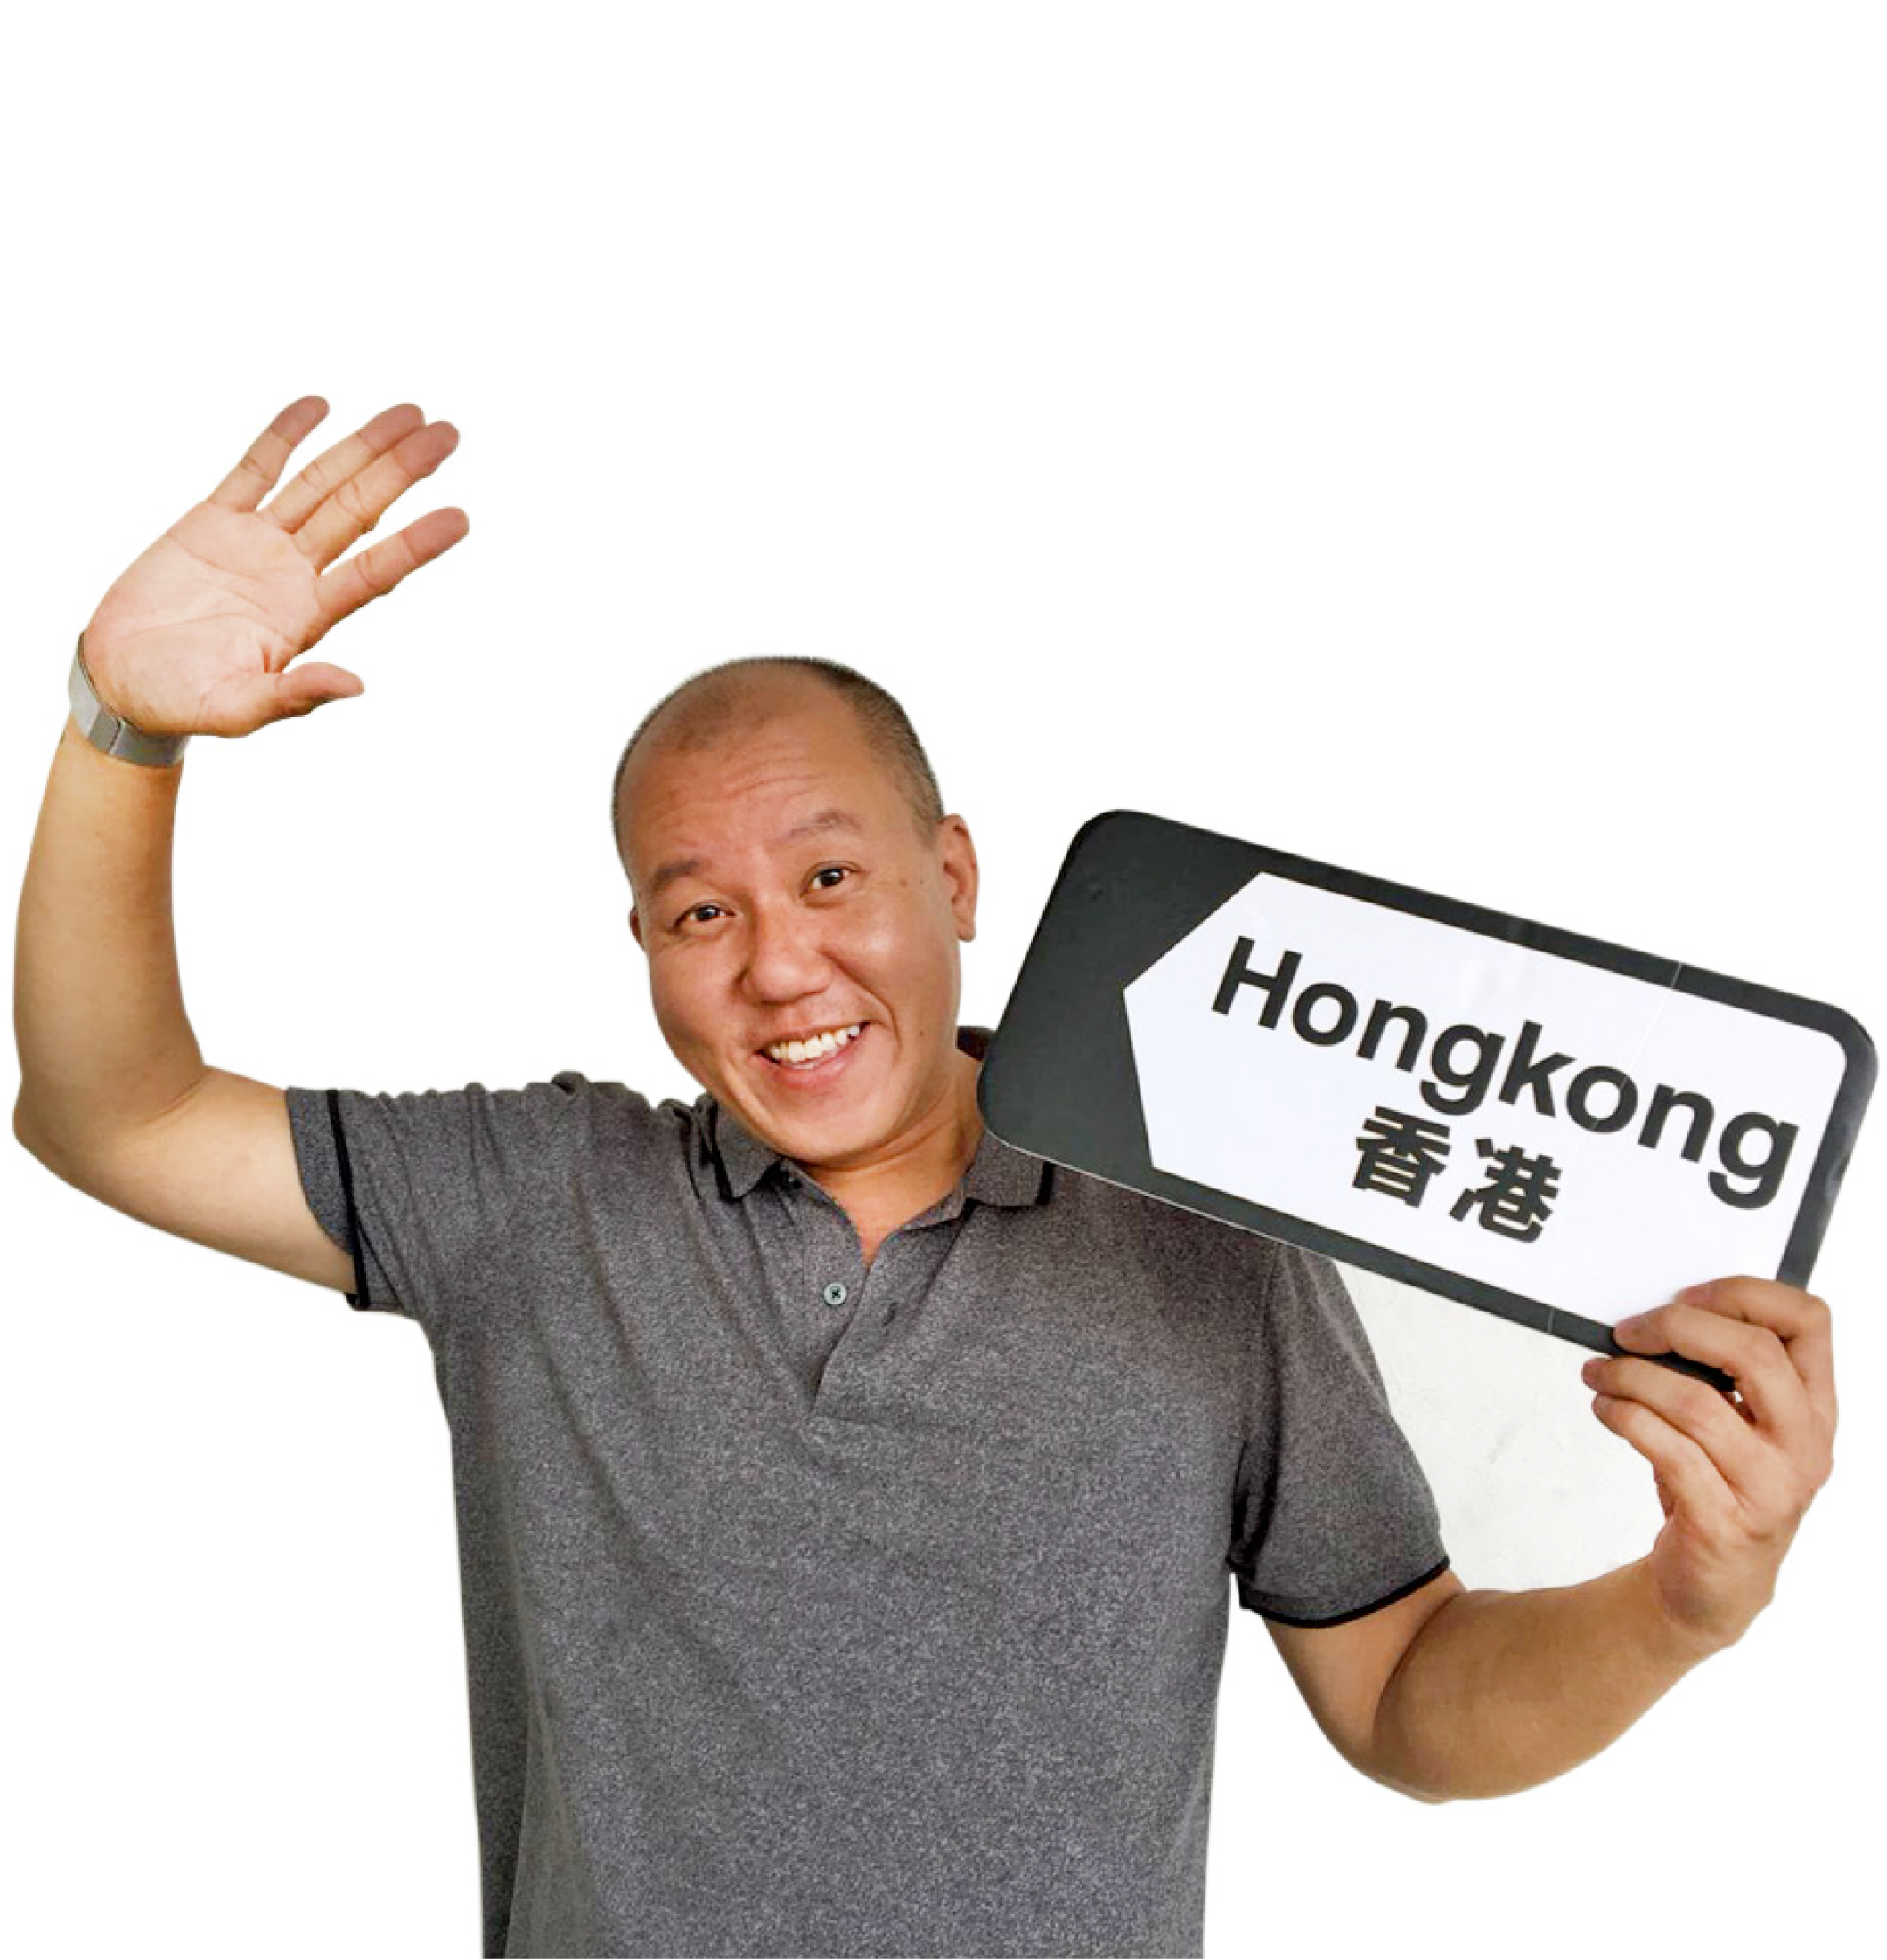 "RYAN - A ""Hello"" to people from all over the world. I'm RYAN, RYAN LAU 100% ""HONGKONGER"".My great-grandfather came to Hong Kong from South West Mainland China in the 1920s and my mother is a ""Tanka"" people (Boat people) from Sai Kung – a small fishing village located at the East of Hong Kong's New Territories. Our family history could trace back to Qing dynasty. However, just like most of the other Tanka people, there is no written history, all the stories were passed from ear to mouth only. Even my grandparents and my mother do not read and write Chinese. We are witnesses to the complete history ""Hong Kong – Qing, Hong Kong – British, Hong Kong – China"". Now we all living near Wong Tai Sin, Kowloon.I graduated from local school then worked as an outbound tour escort to all over China for 10 years. Spending so much time travelling around I realised that tourists places are important but local places are more interesting. So I used to visit local places on my travels. After 10 years of travelling, I realized that my birthplace, Hong Kong, is unique. The place where East meets West. So I started my guiding work in HONG KONG!I can say that I'm a responsible and hard-working man. Moreover, being a sociable person, I have many friends since I like to communicate with people and get to know new interesting individuals. I enjoy my time in guiding and have many local stories would like to share with all of you."